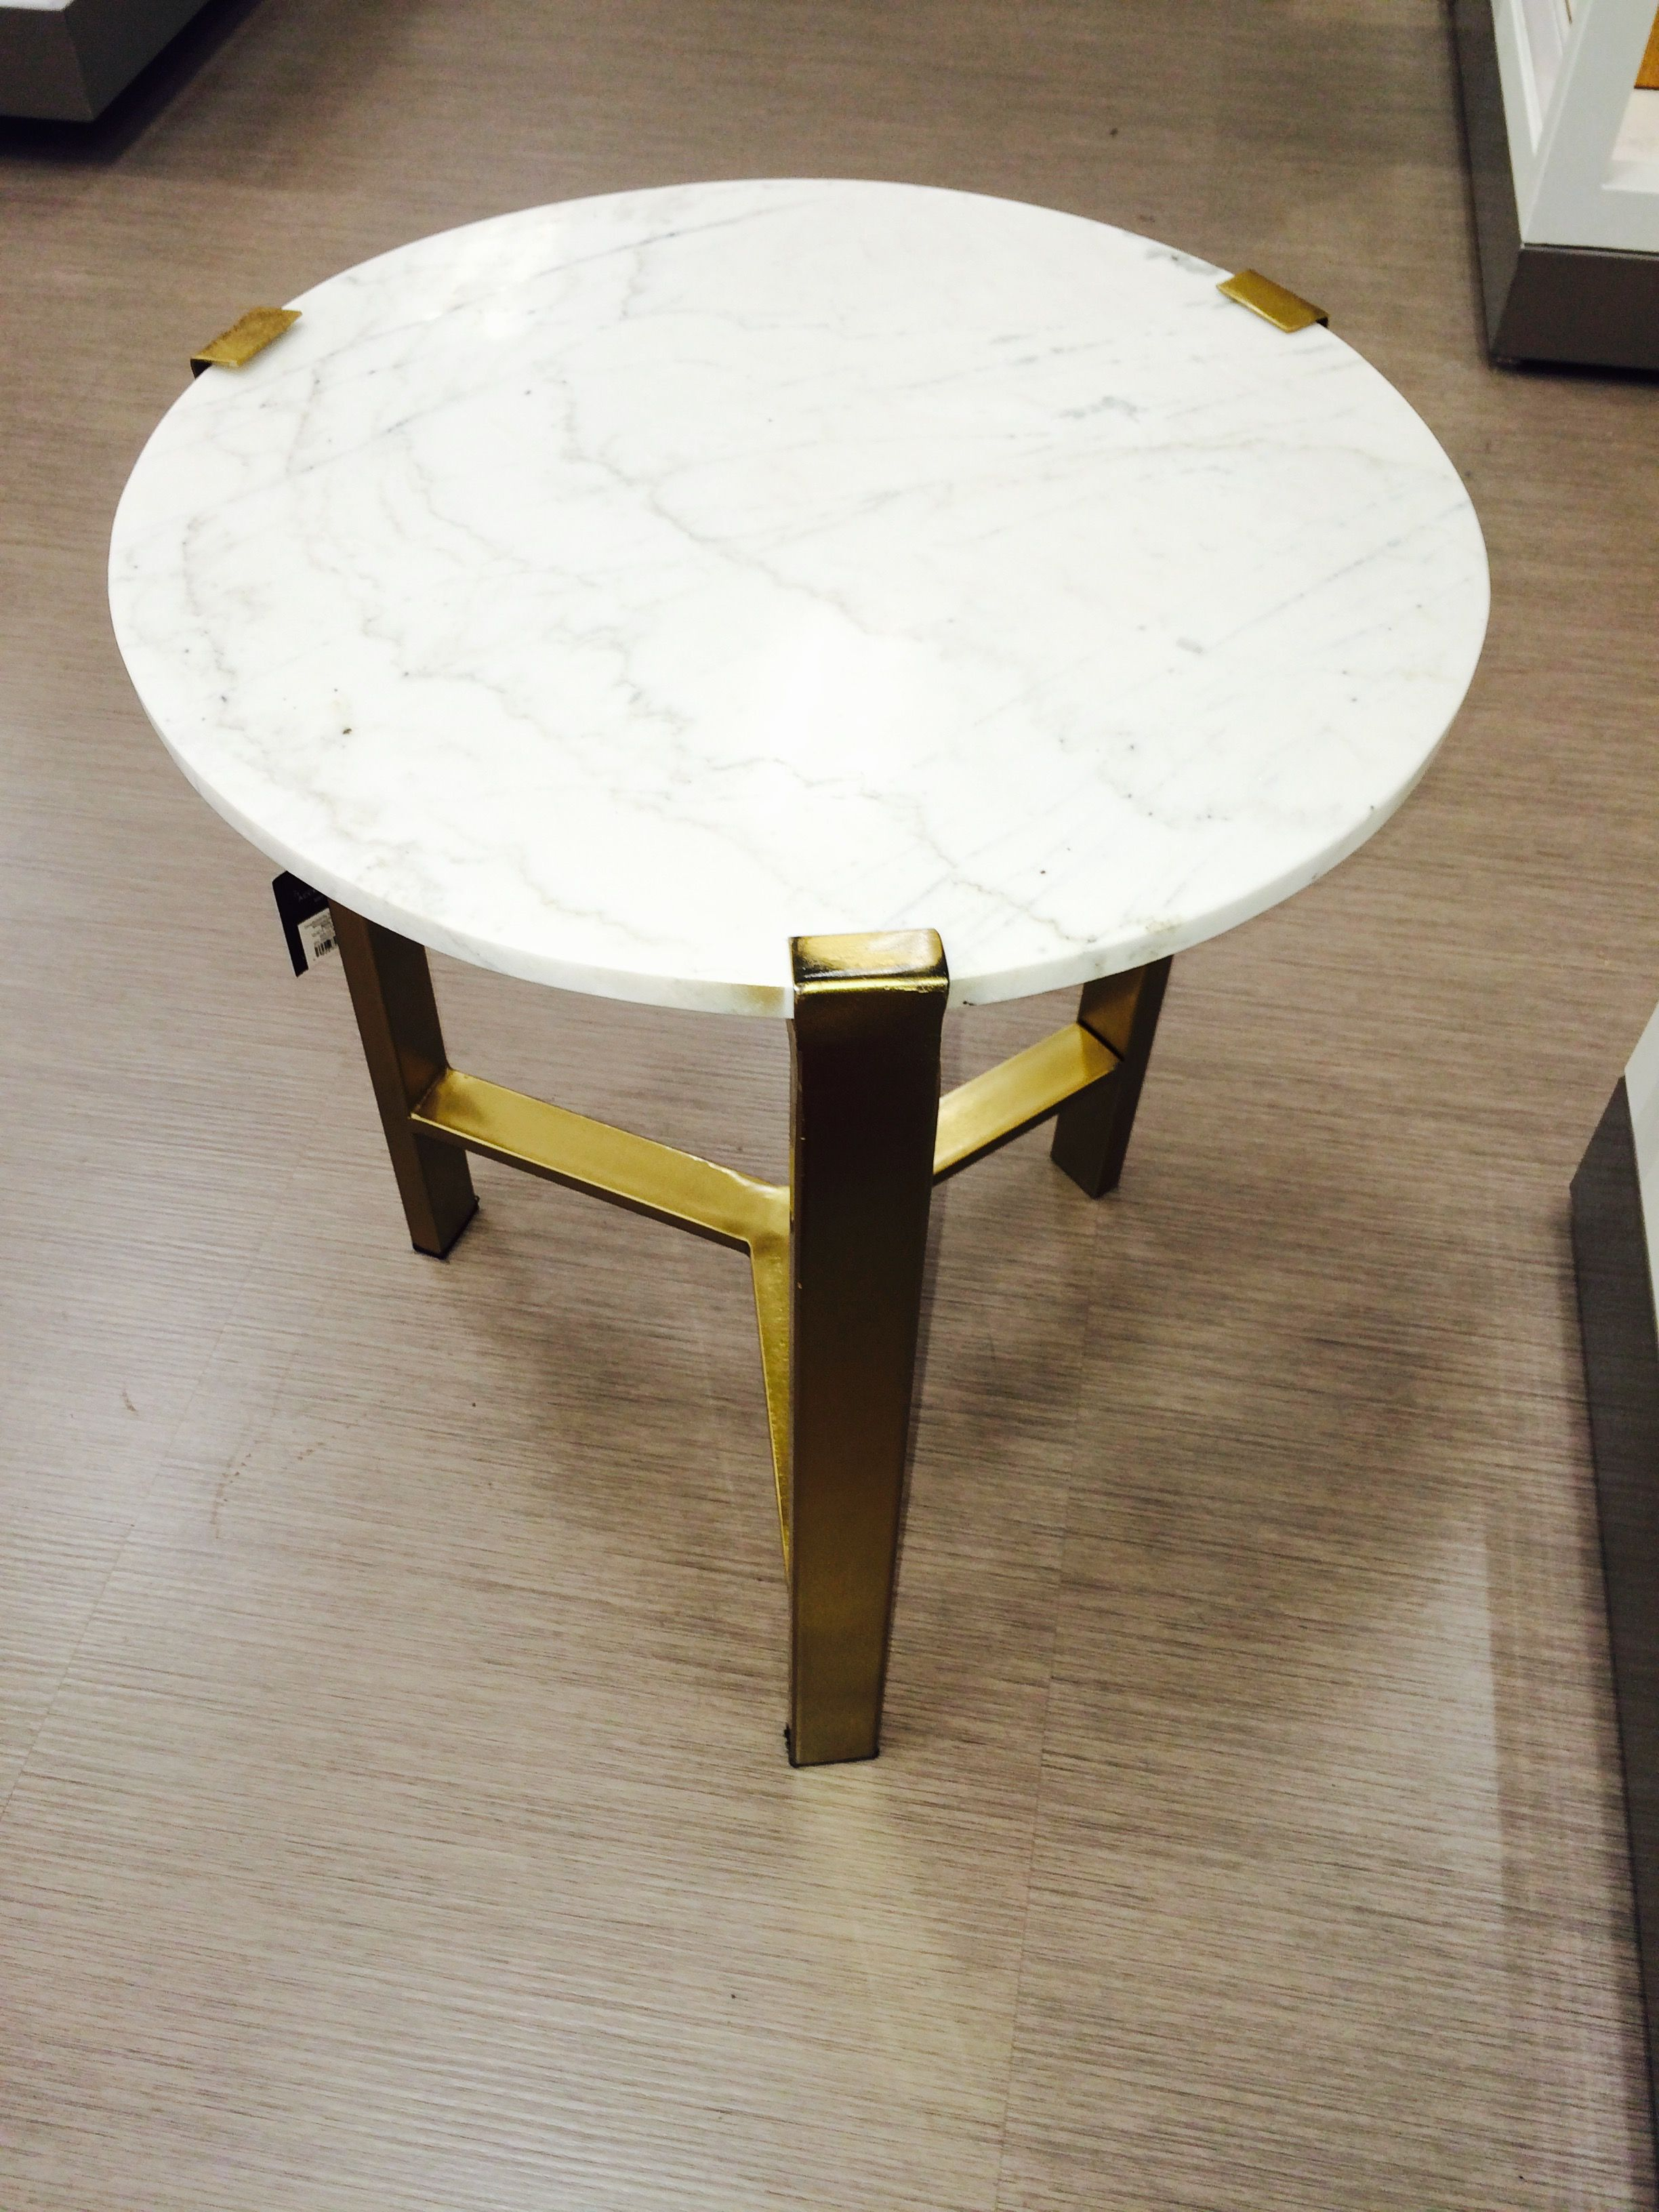 nate berkus for target gold accent table with marble top the end christmas settings bradcock furniture small round glass side oak stain skinny mersman piece coffee and sets pier